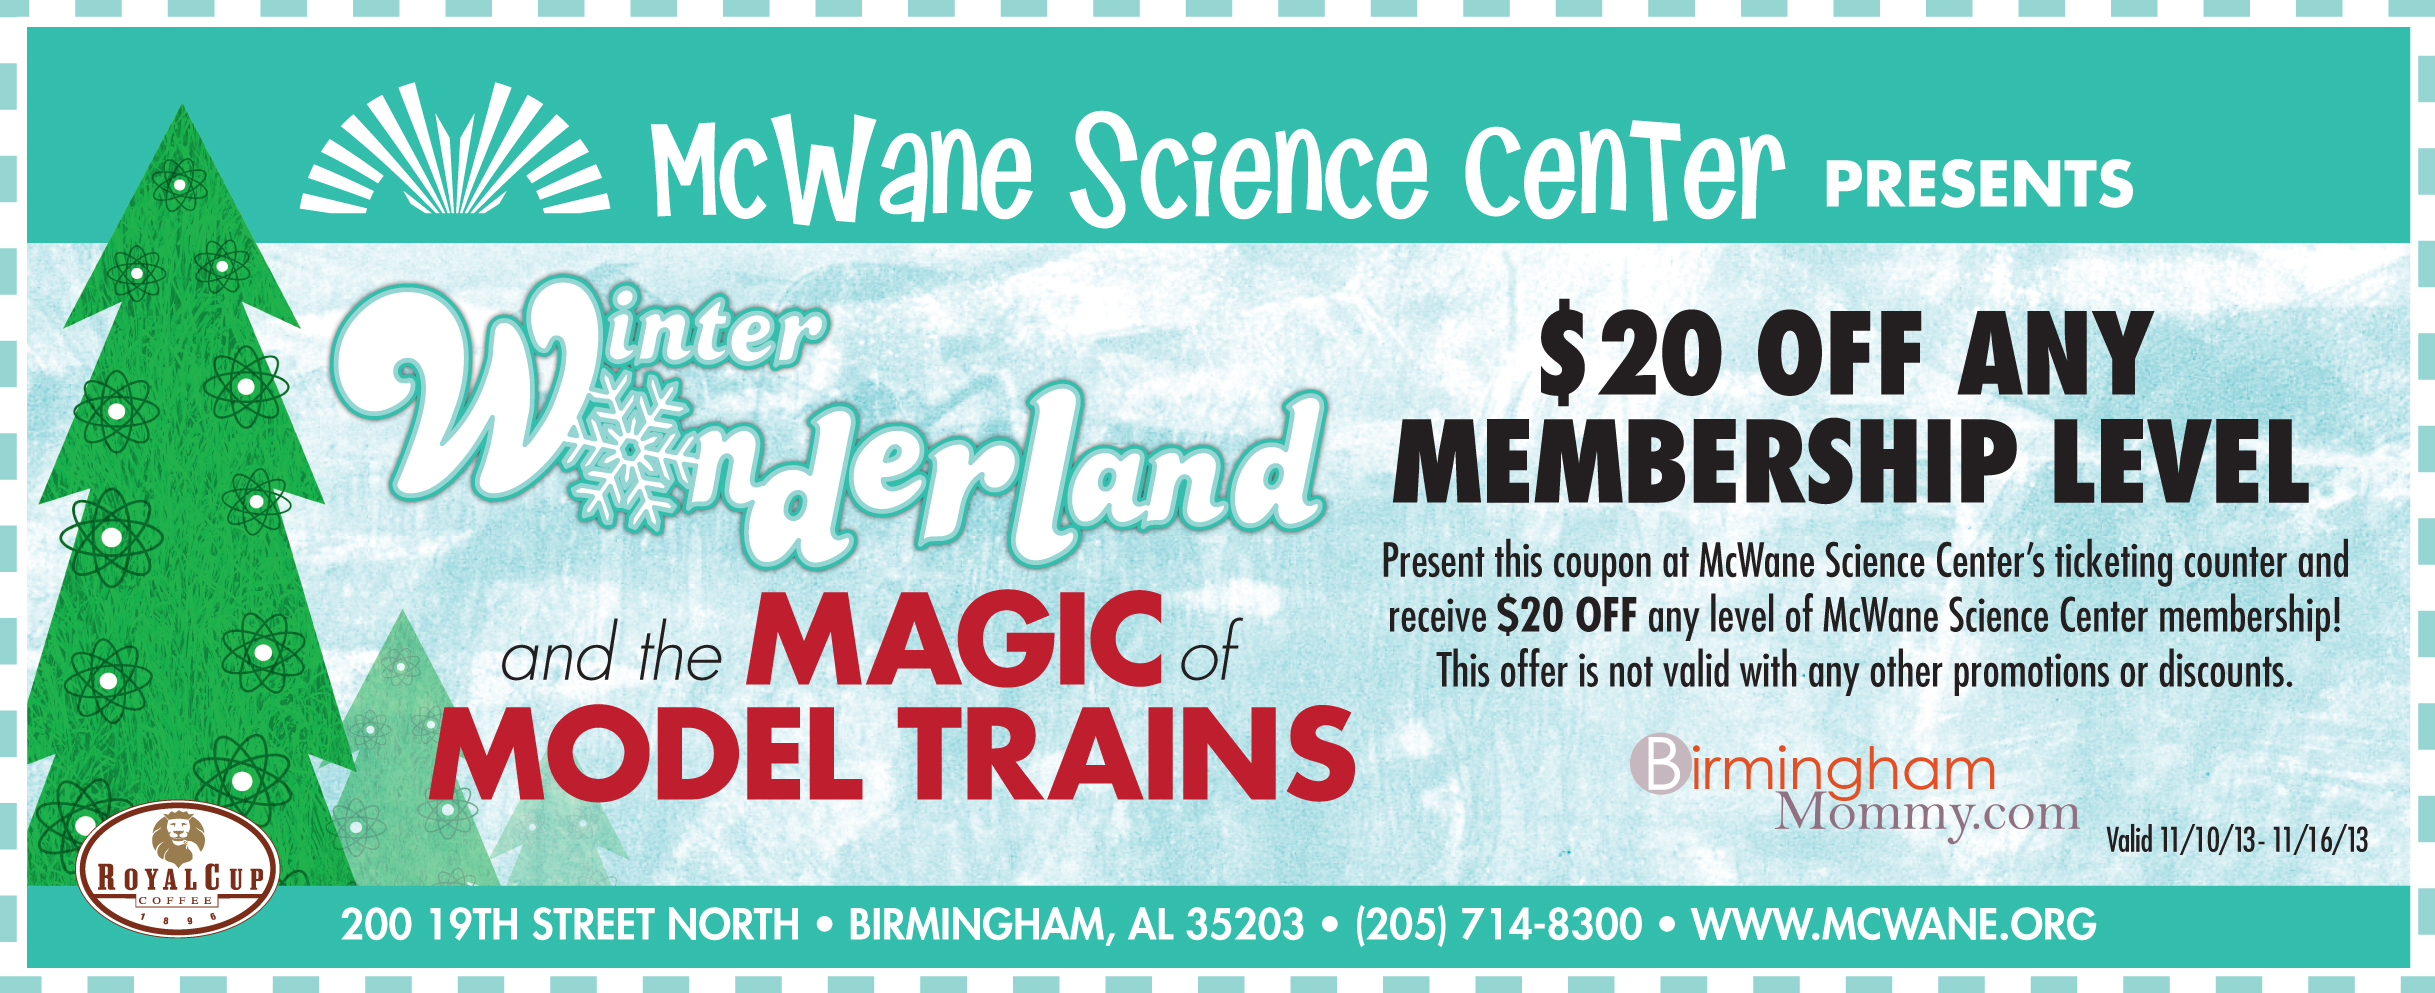 Orlando science center discount coupon